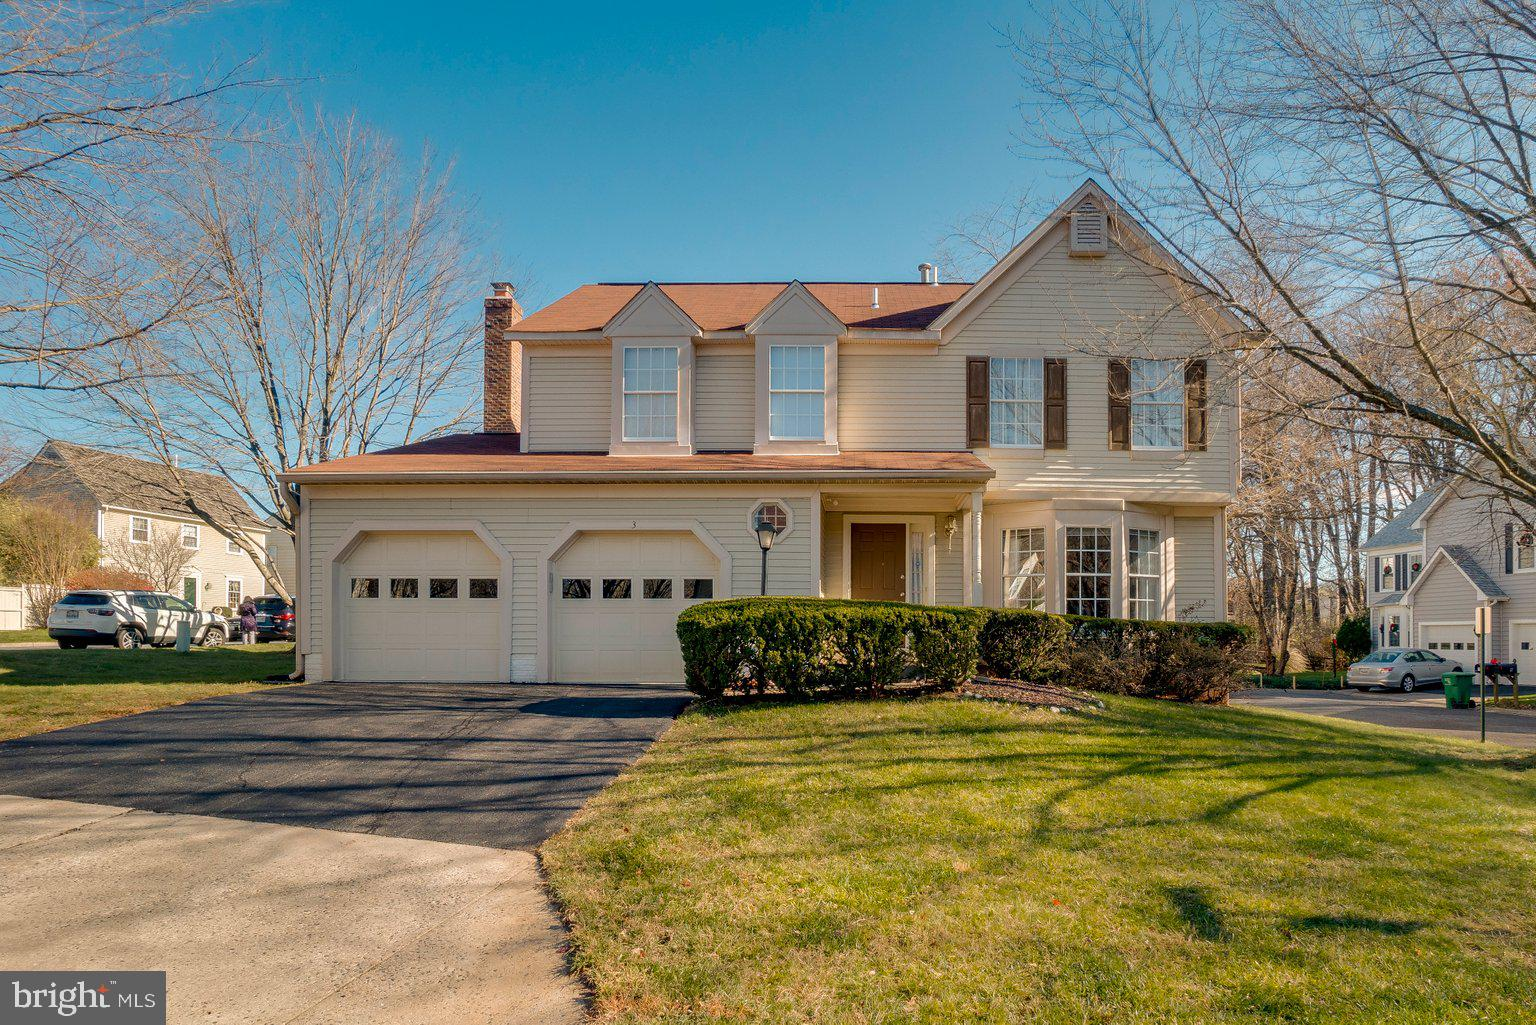 Welcome to 3 Quantum Lane - a grand colonial home located in the Saybrooke community of Gaithersburg